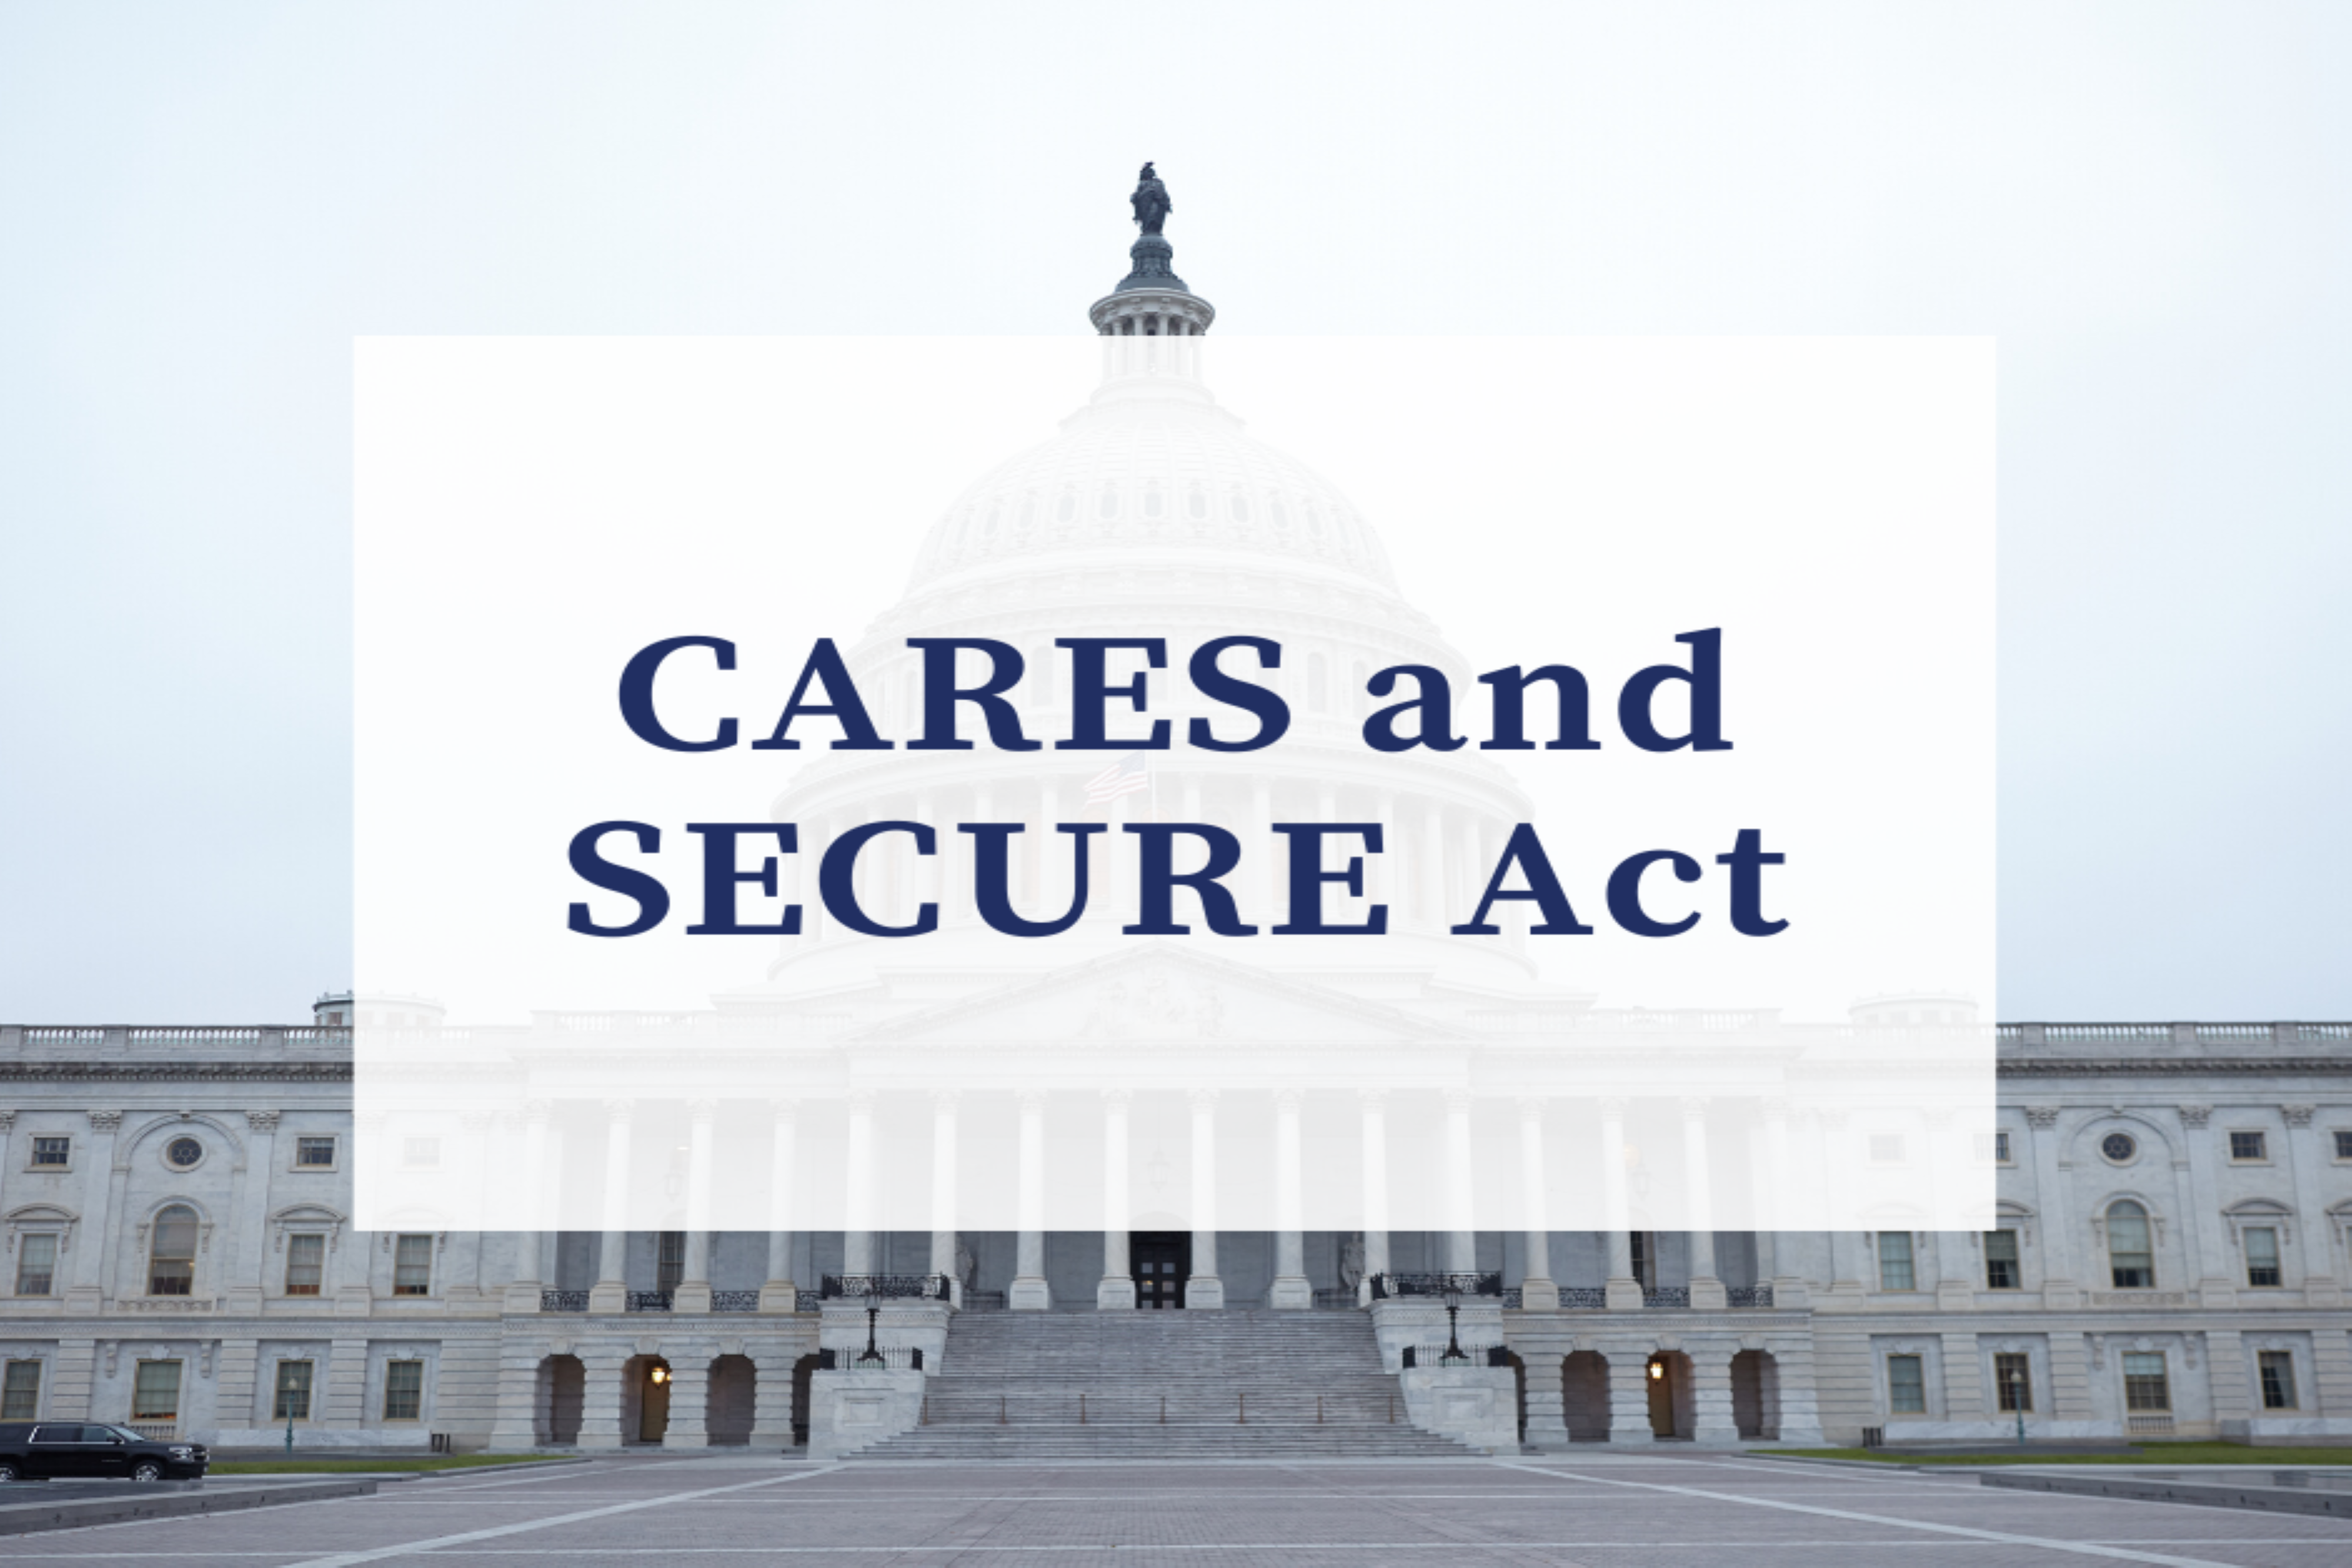 CARES and SECURE Act Thumbnail